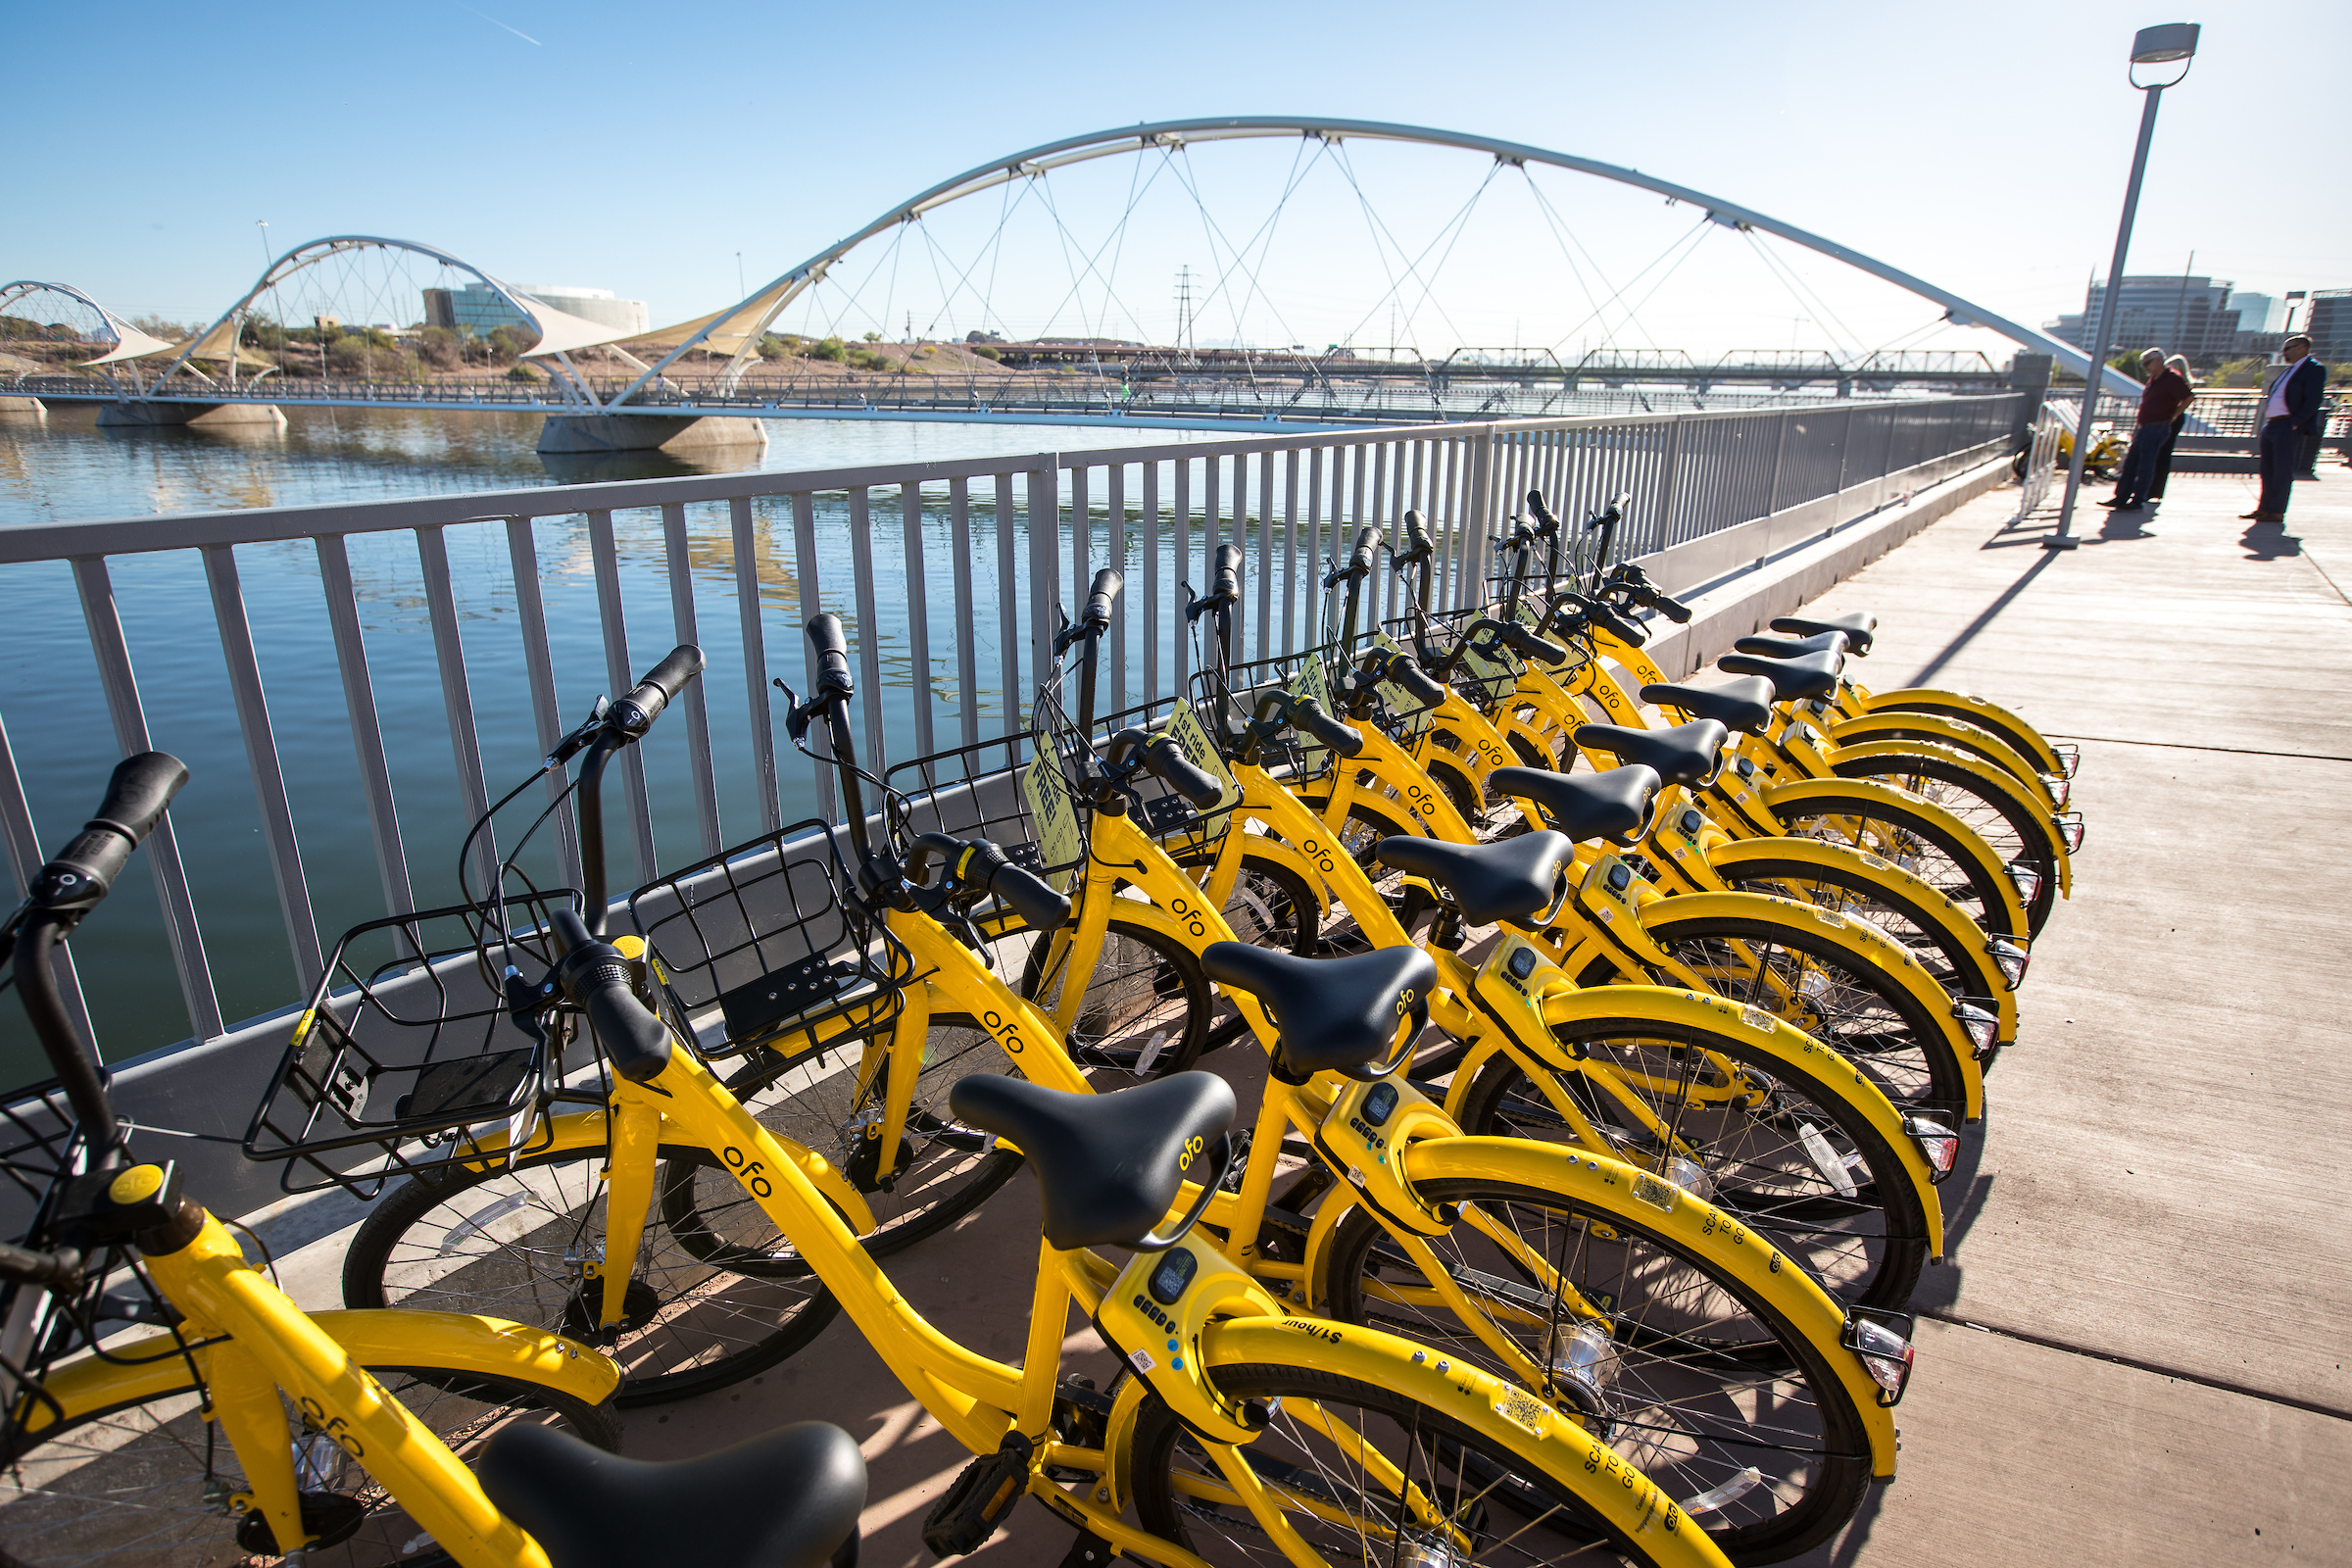 A row of yellow bikes in front of Tempe Town Lake